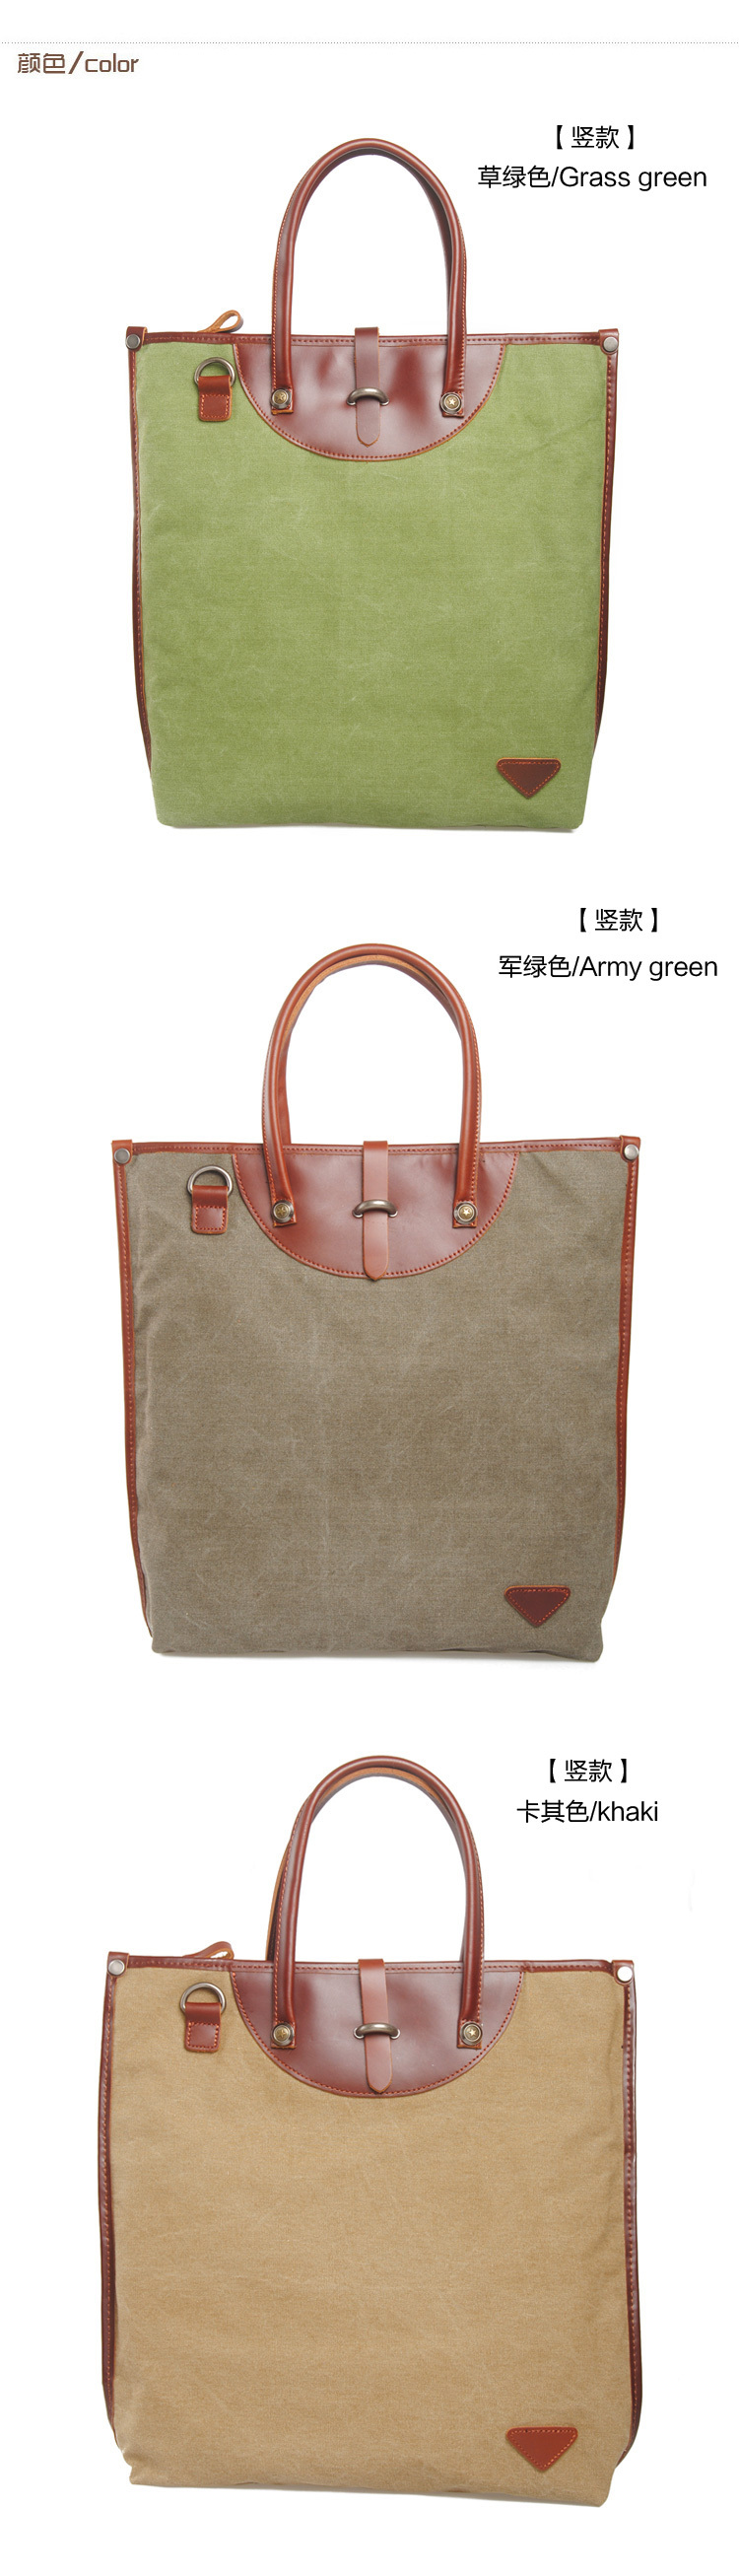 Amy green high density cotton canvas shopping bag leather handbags with long straps